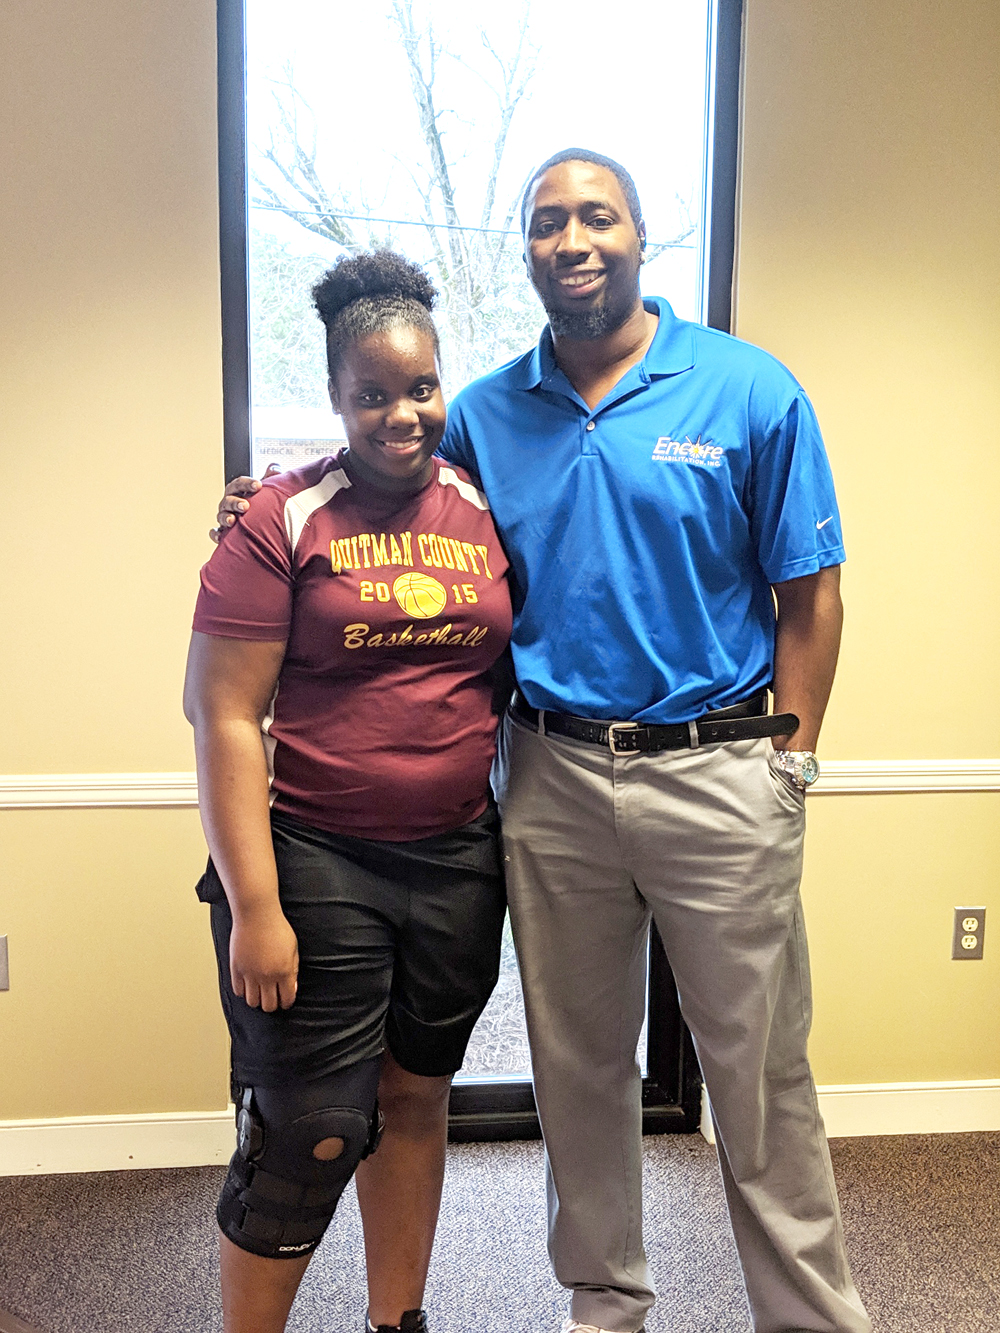 Ty'Zairea Ceaser is Athlete of the Month for Encore Rehaiblitaiton-Eufaula #EncoreRehab